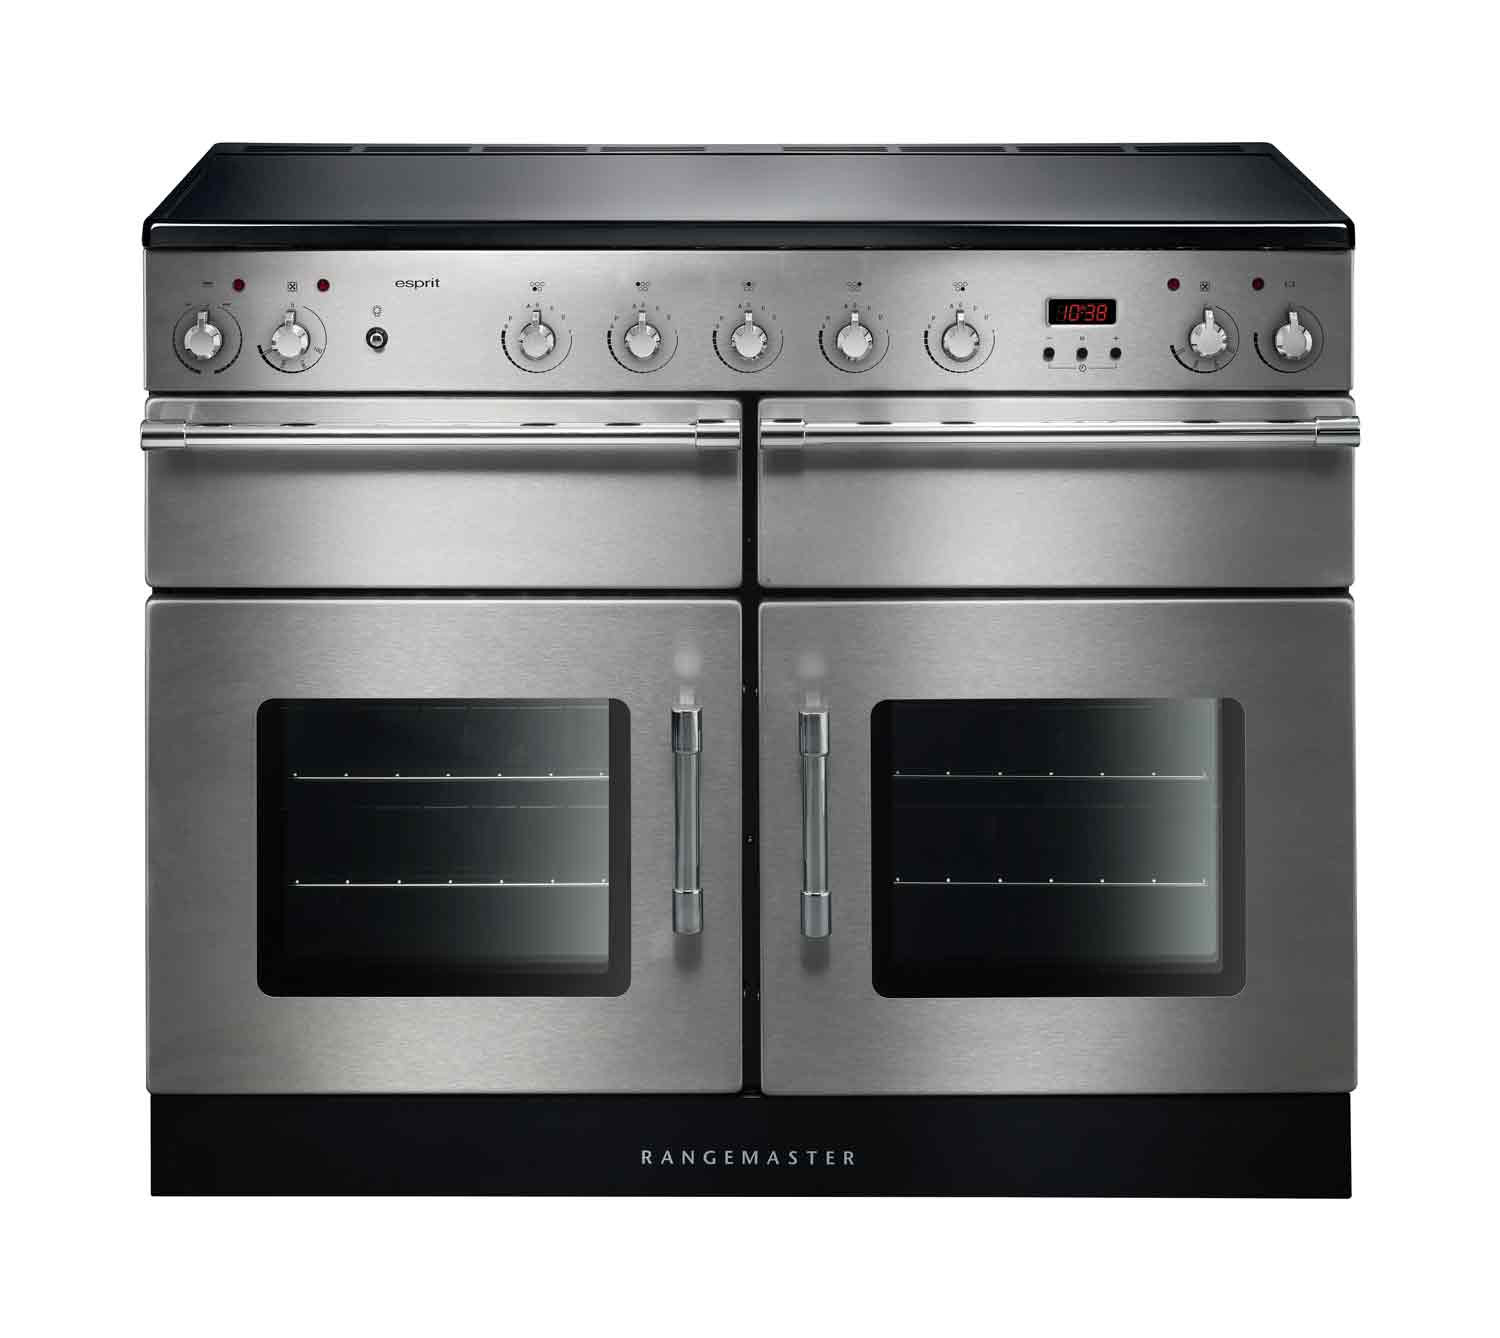 Rangemaster Esprit 110 Induction Stainless Steel Range Cooker ESP110EISS/C